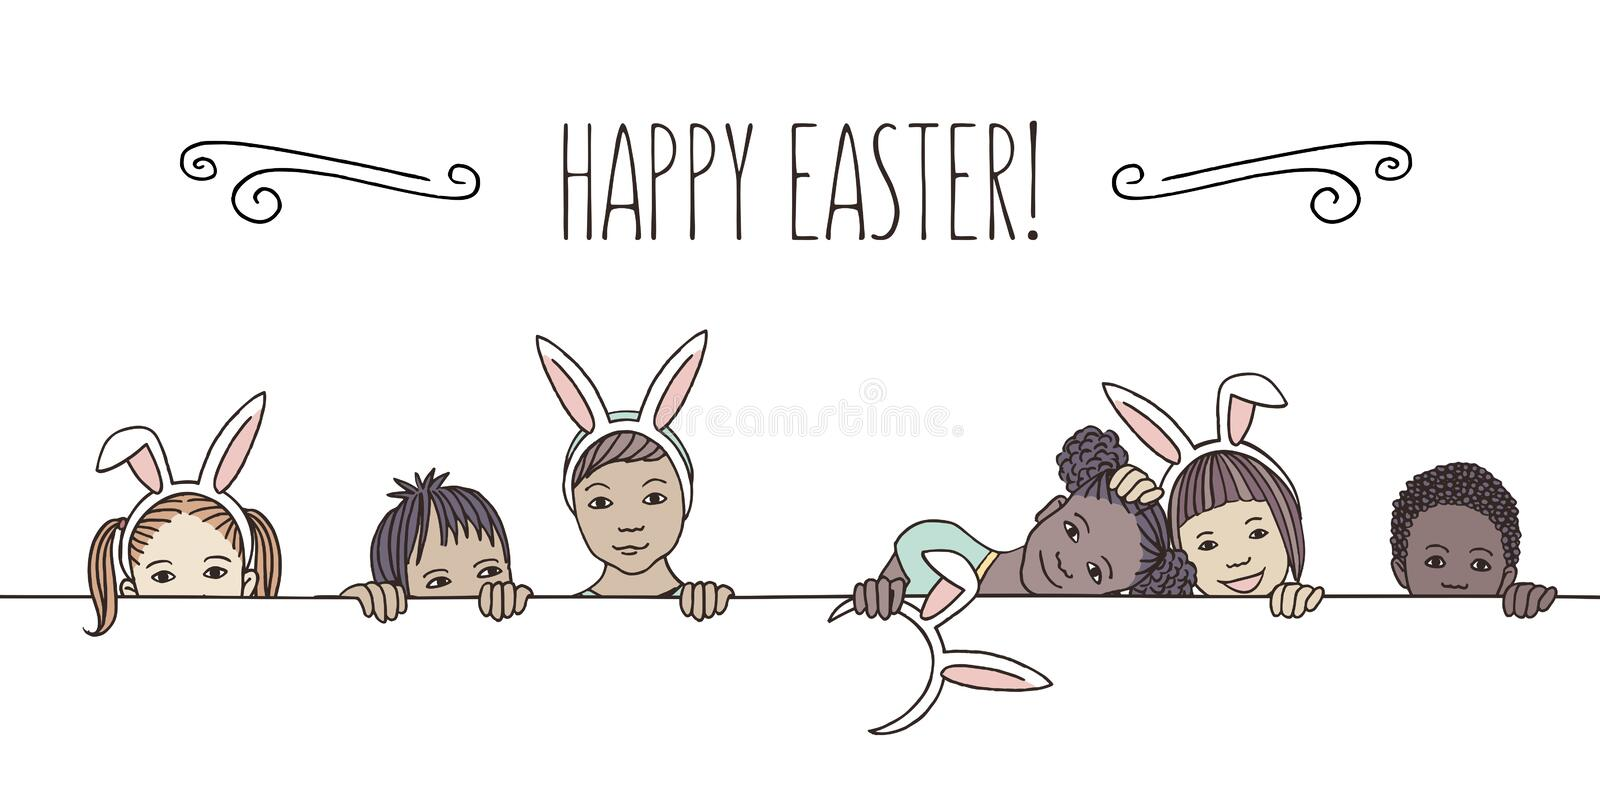 Diverse children with bunny ears - Happy Easter!. Hand drawn illustration for Easter - diverse children with bunny ears, peeking behind a horizontal line stock illustration